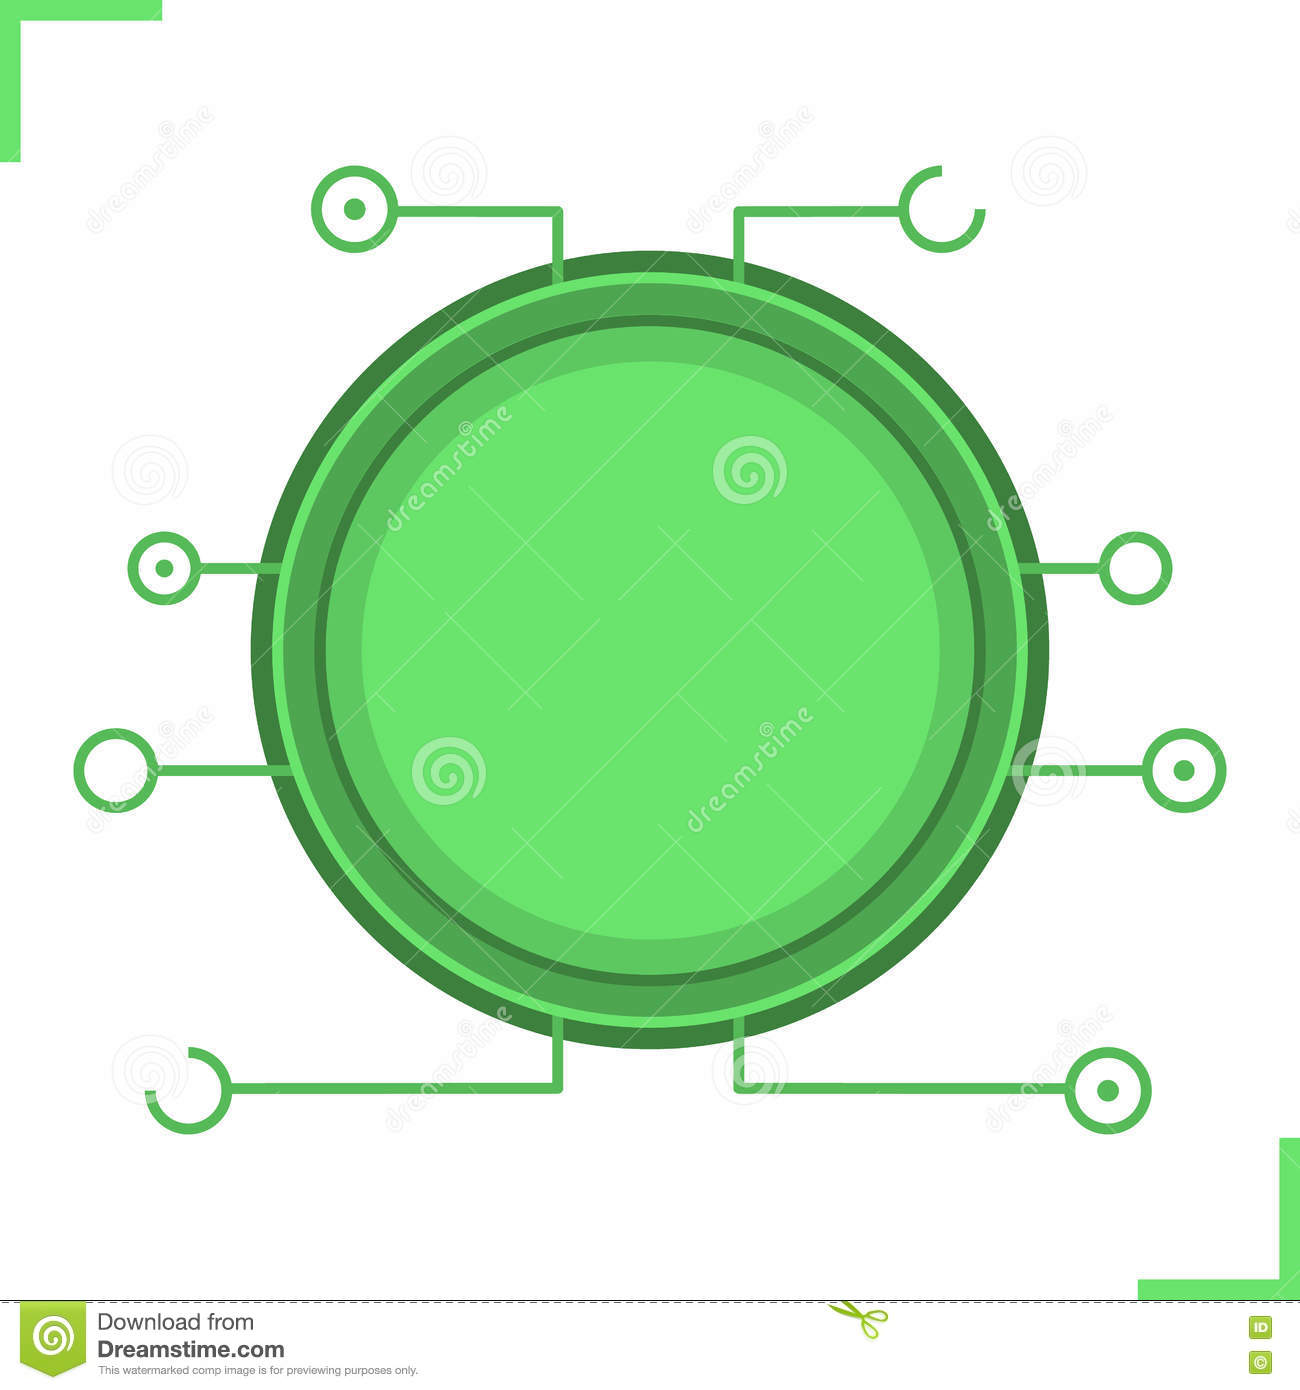 Digital Microchip Frame Stock Vector Illustration Of Computer Graphic Website Internet Circuit Board Text Box Royalty Free